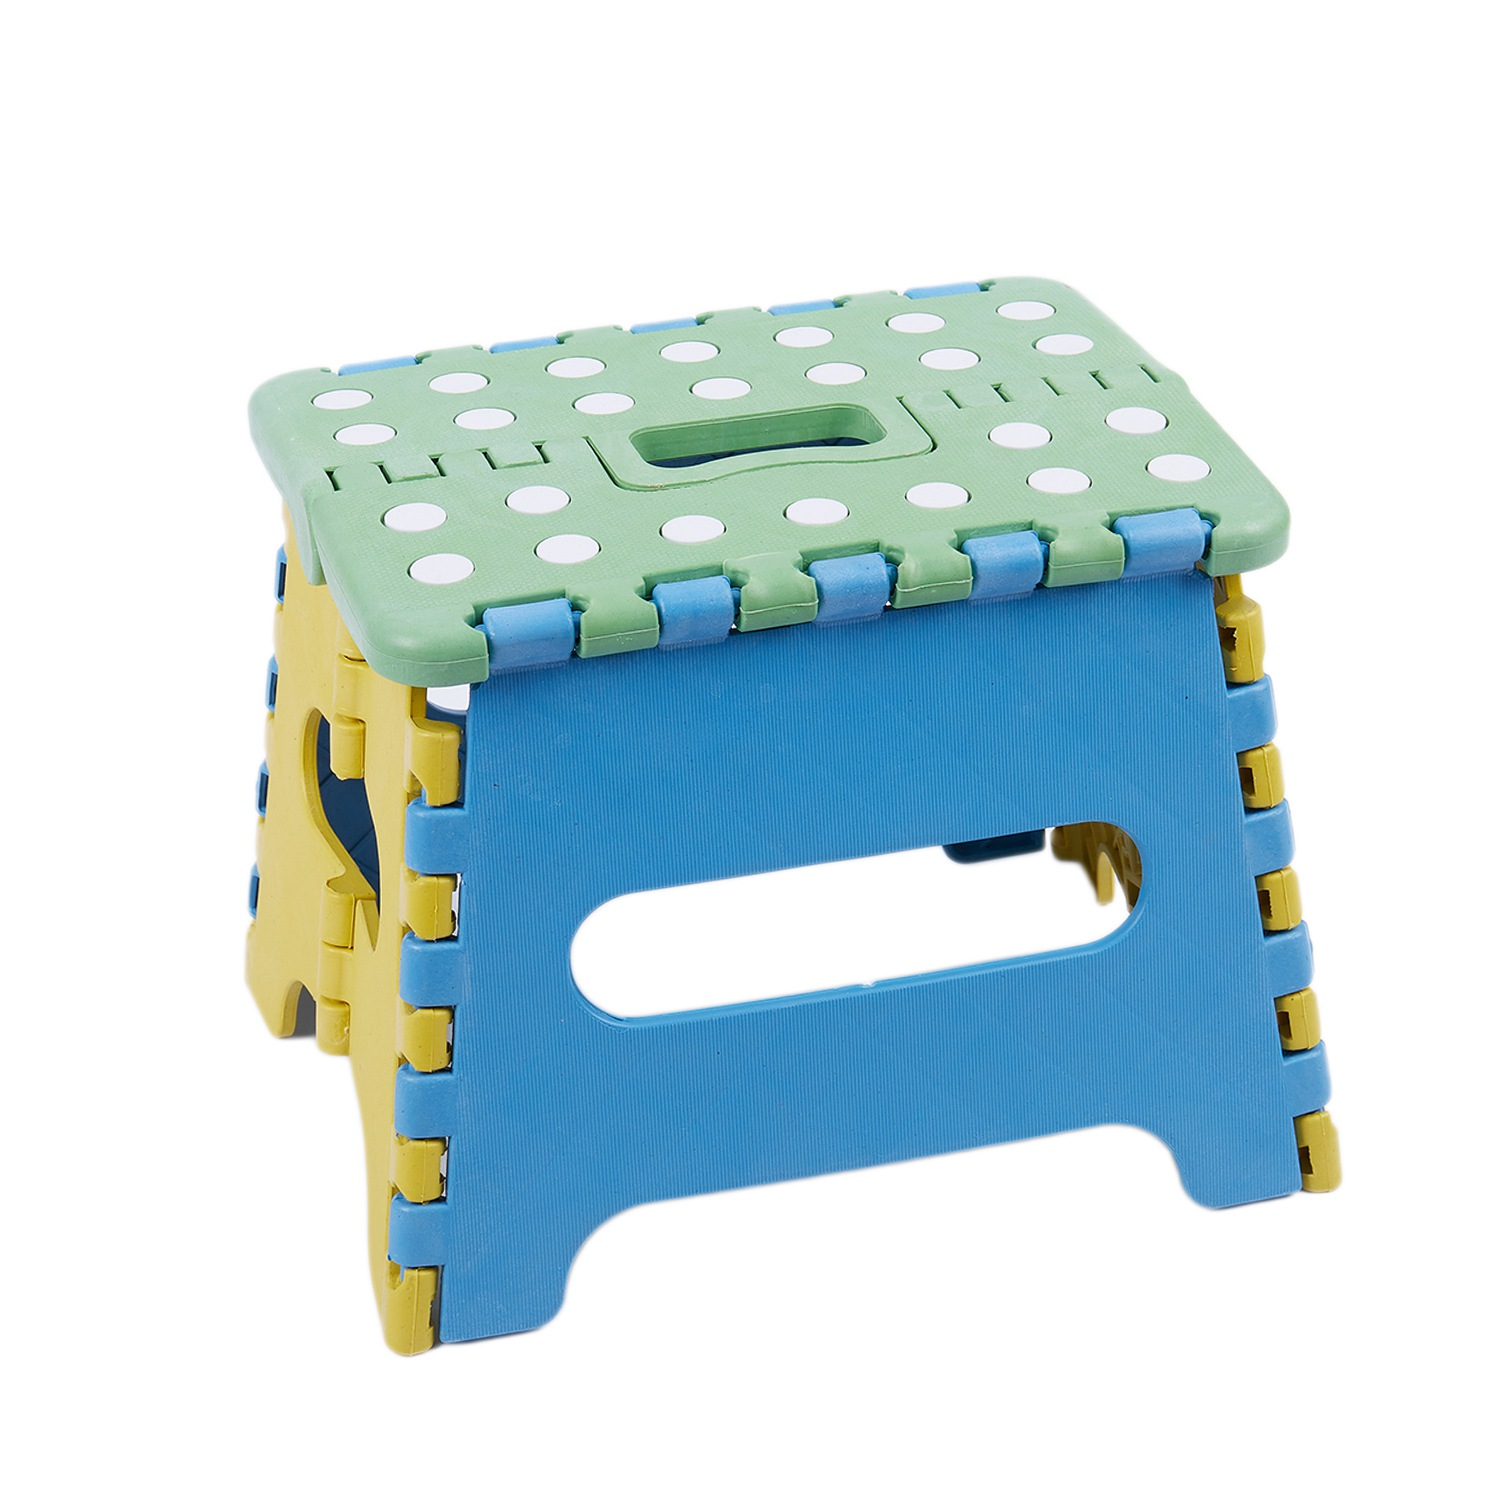 Promotion! Folding Stool Folding Seat Folding Step 22 X 17 X 18cm Plastic Up To 150 Kg Foldable